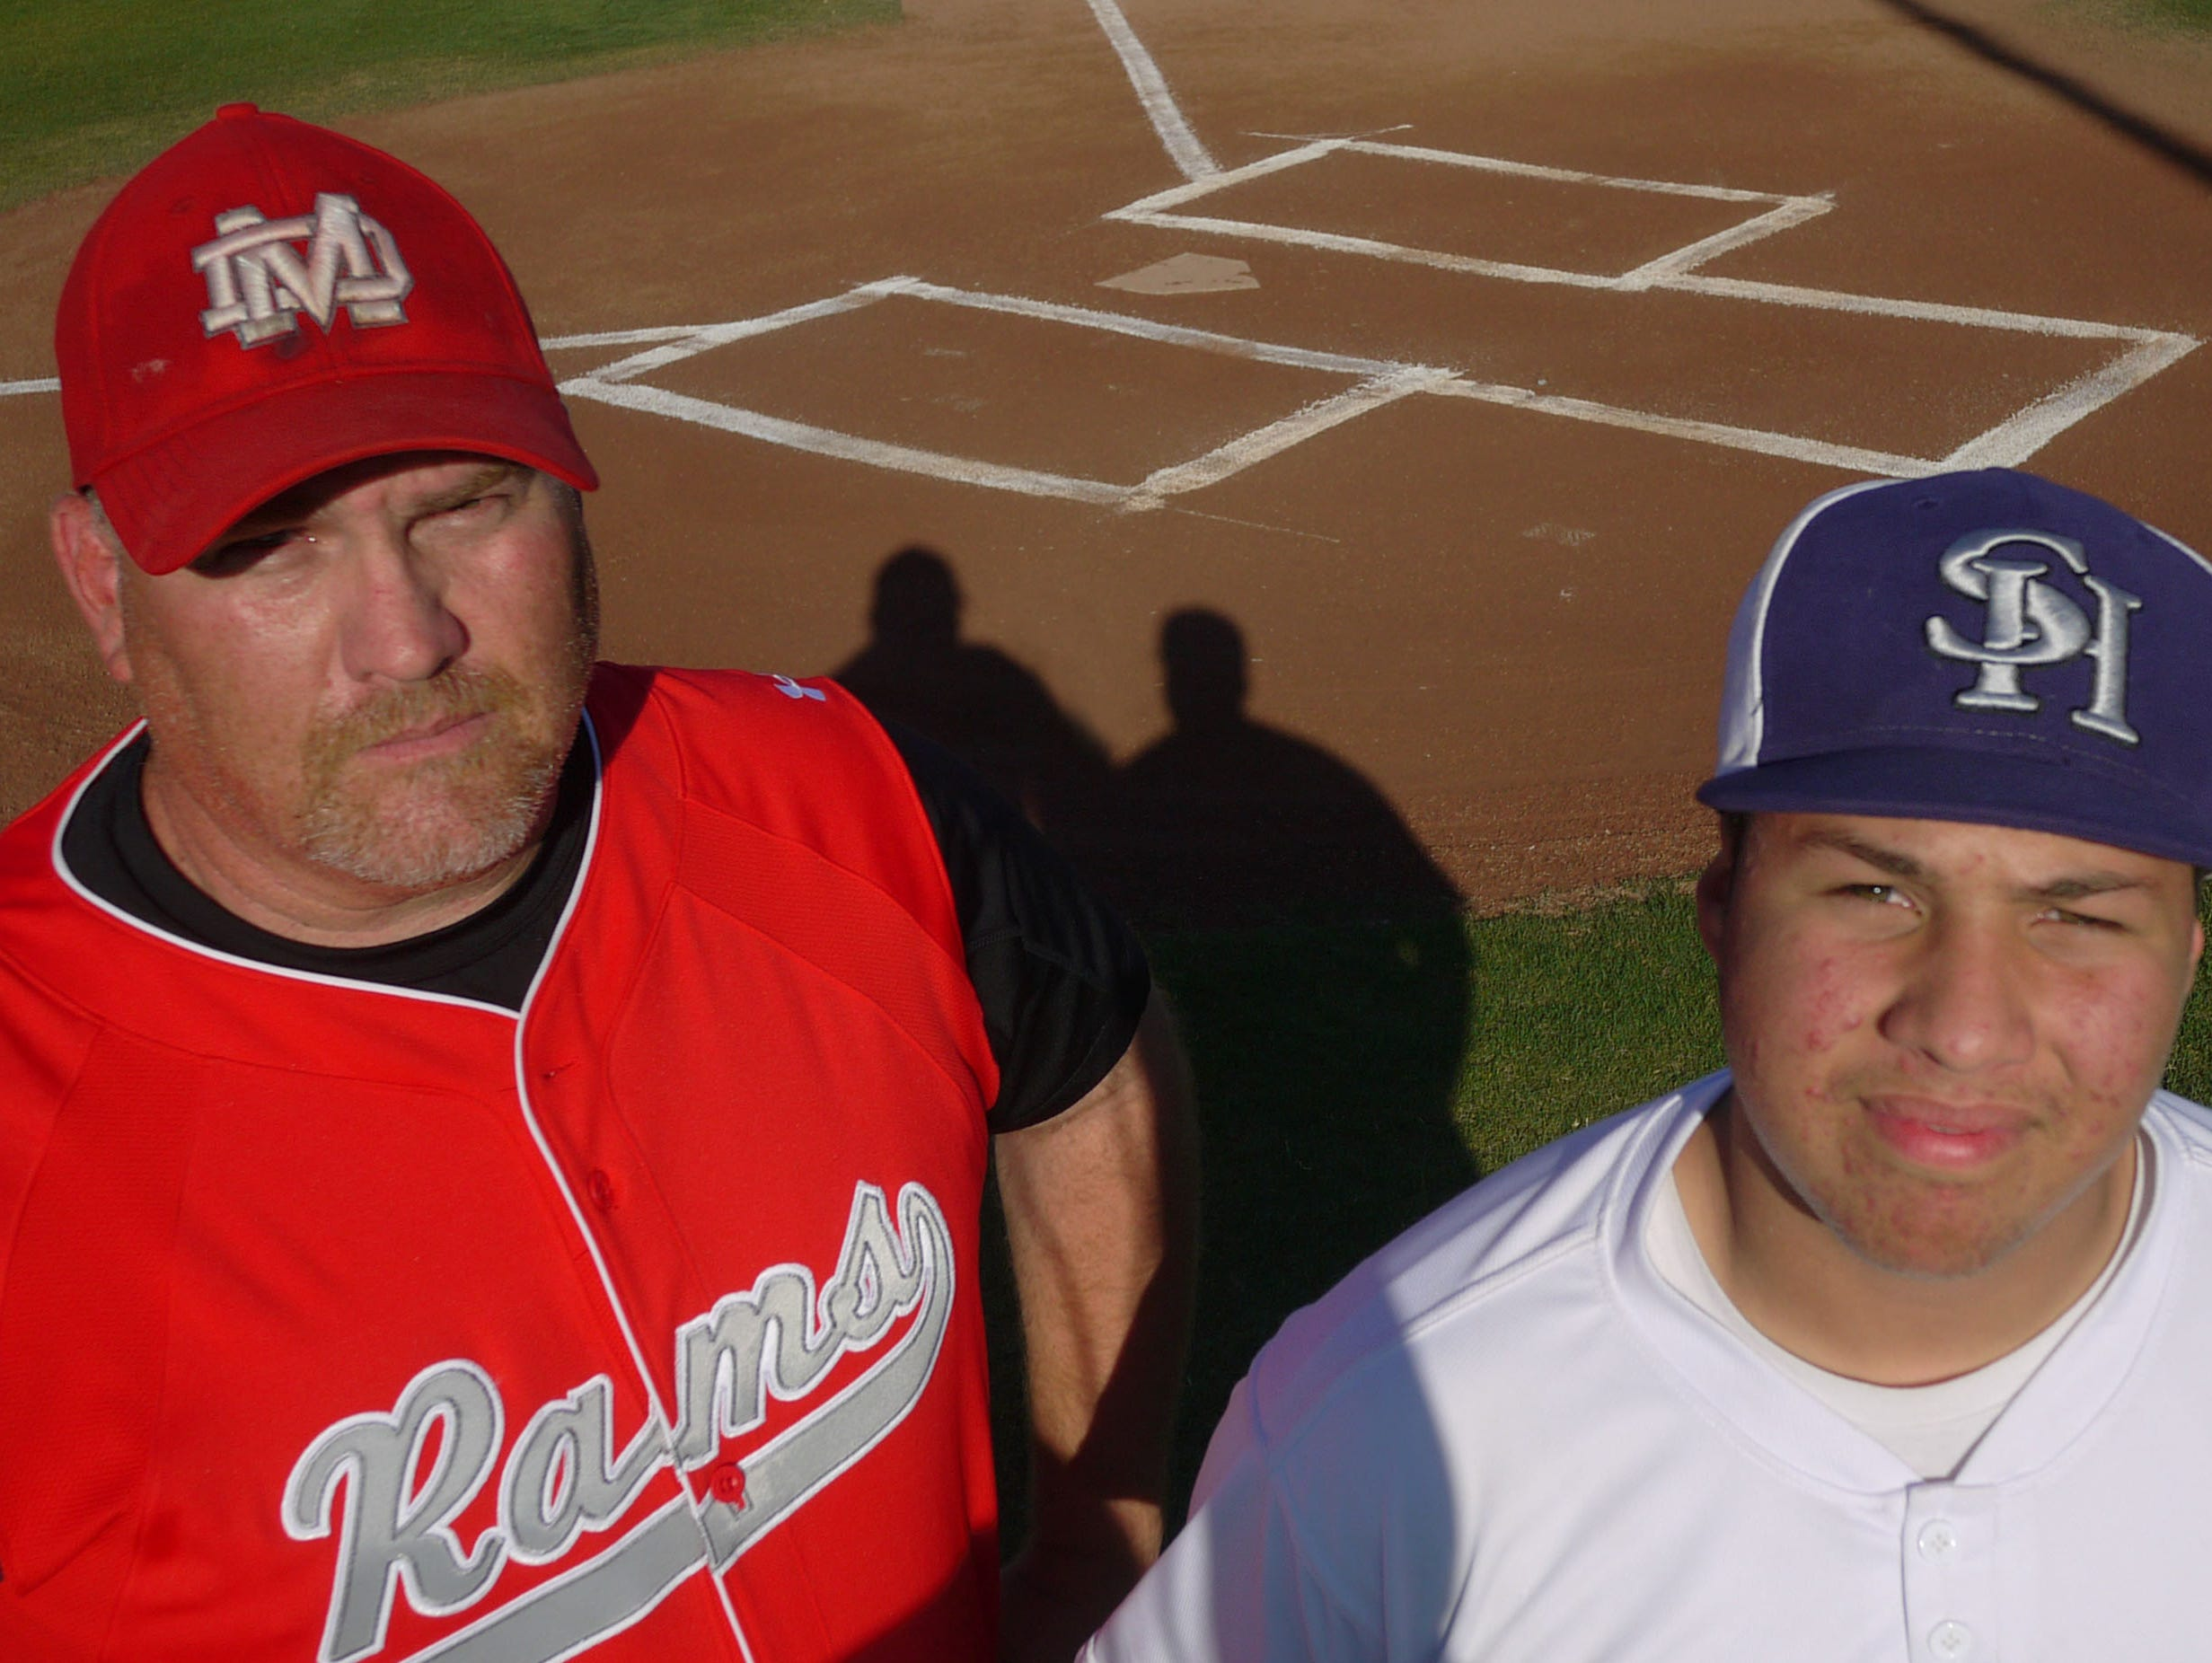 Desert Mirage baseball coach Jason Beck stands with his son Darian Beck, who played for the Shadow Hills High School baseball team. The elder Beck will now coach the Knights next season.